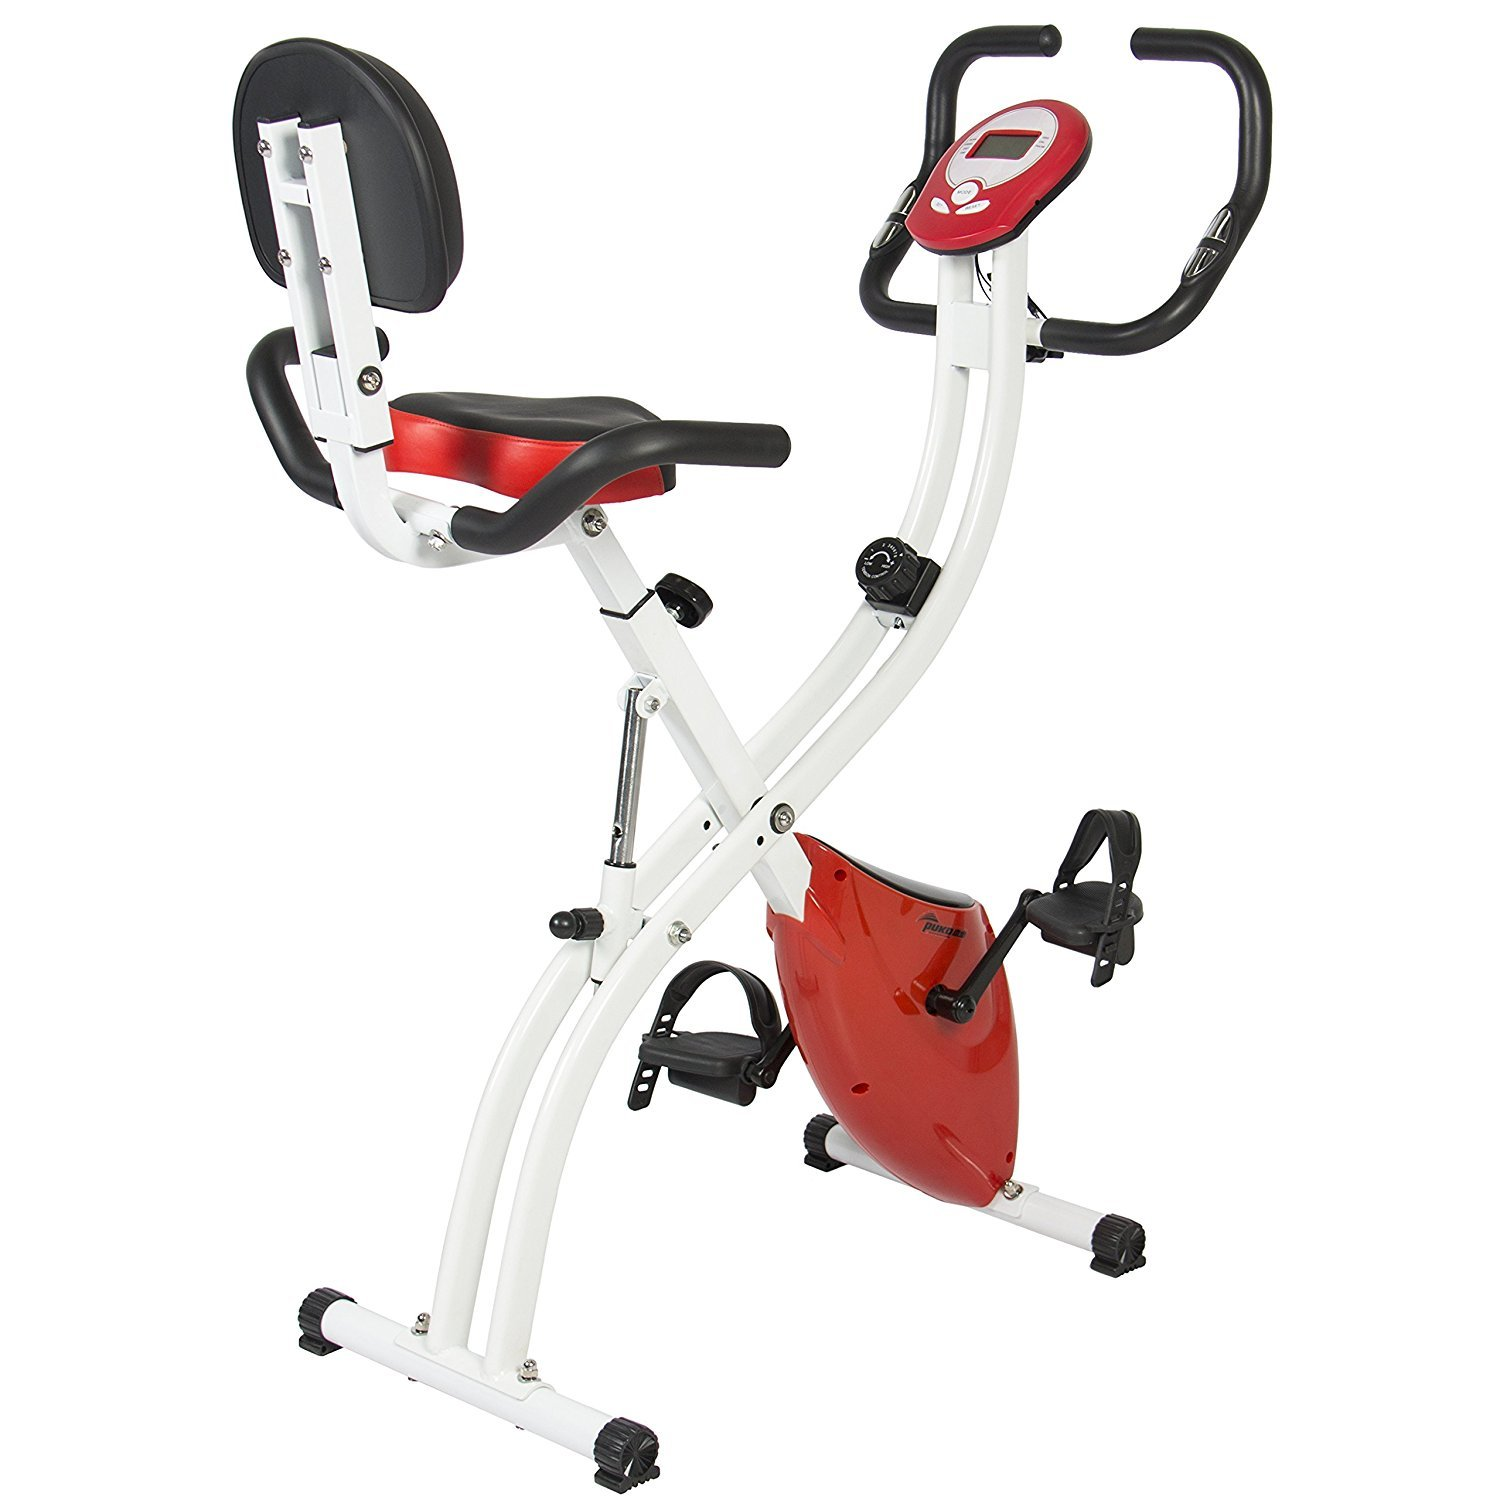 Best Choice Products Folding Adjustable Magnetic Upright Exercise is indicated here